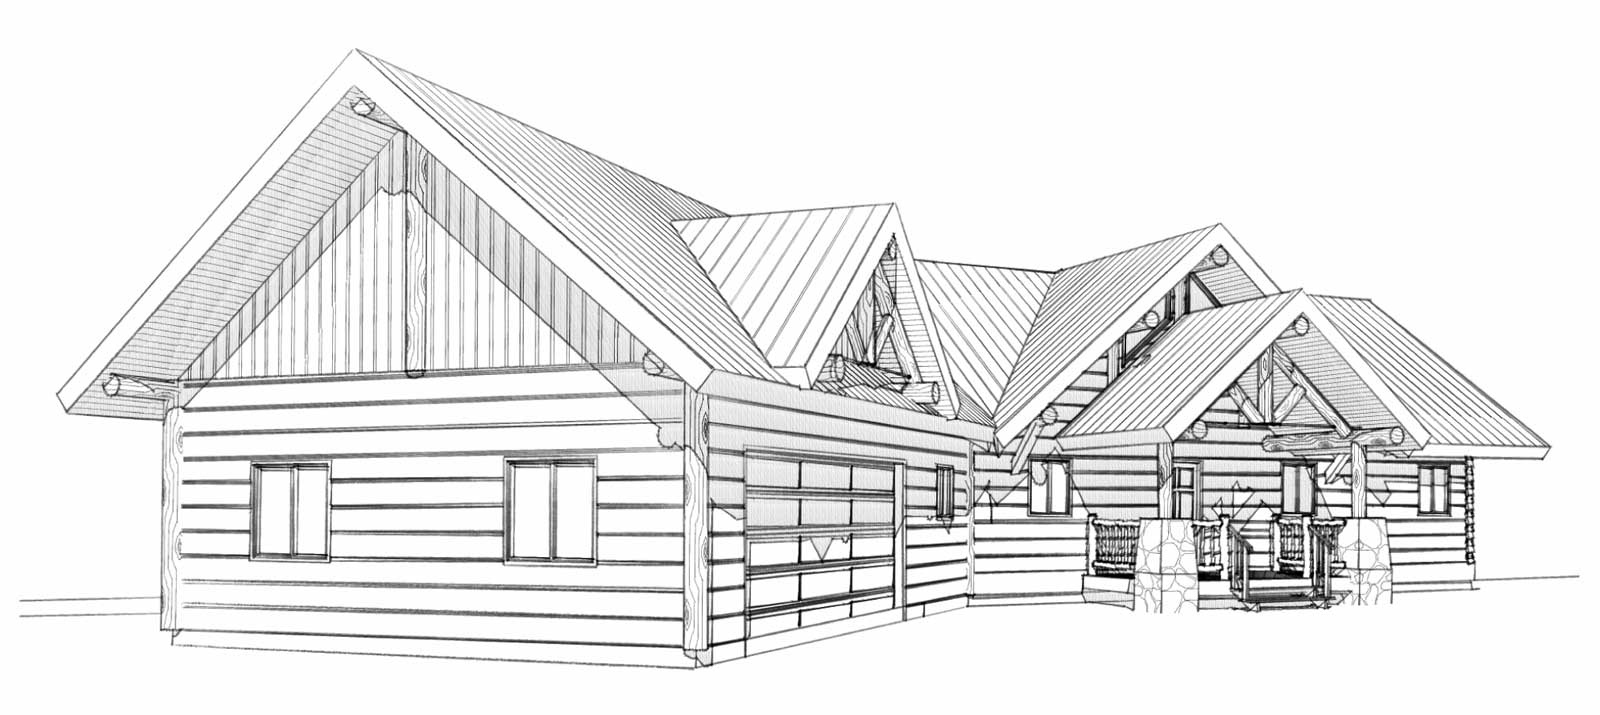 custom designed log home philmont front left view